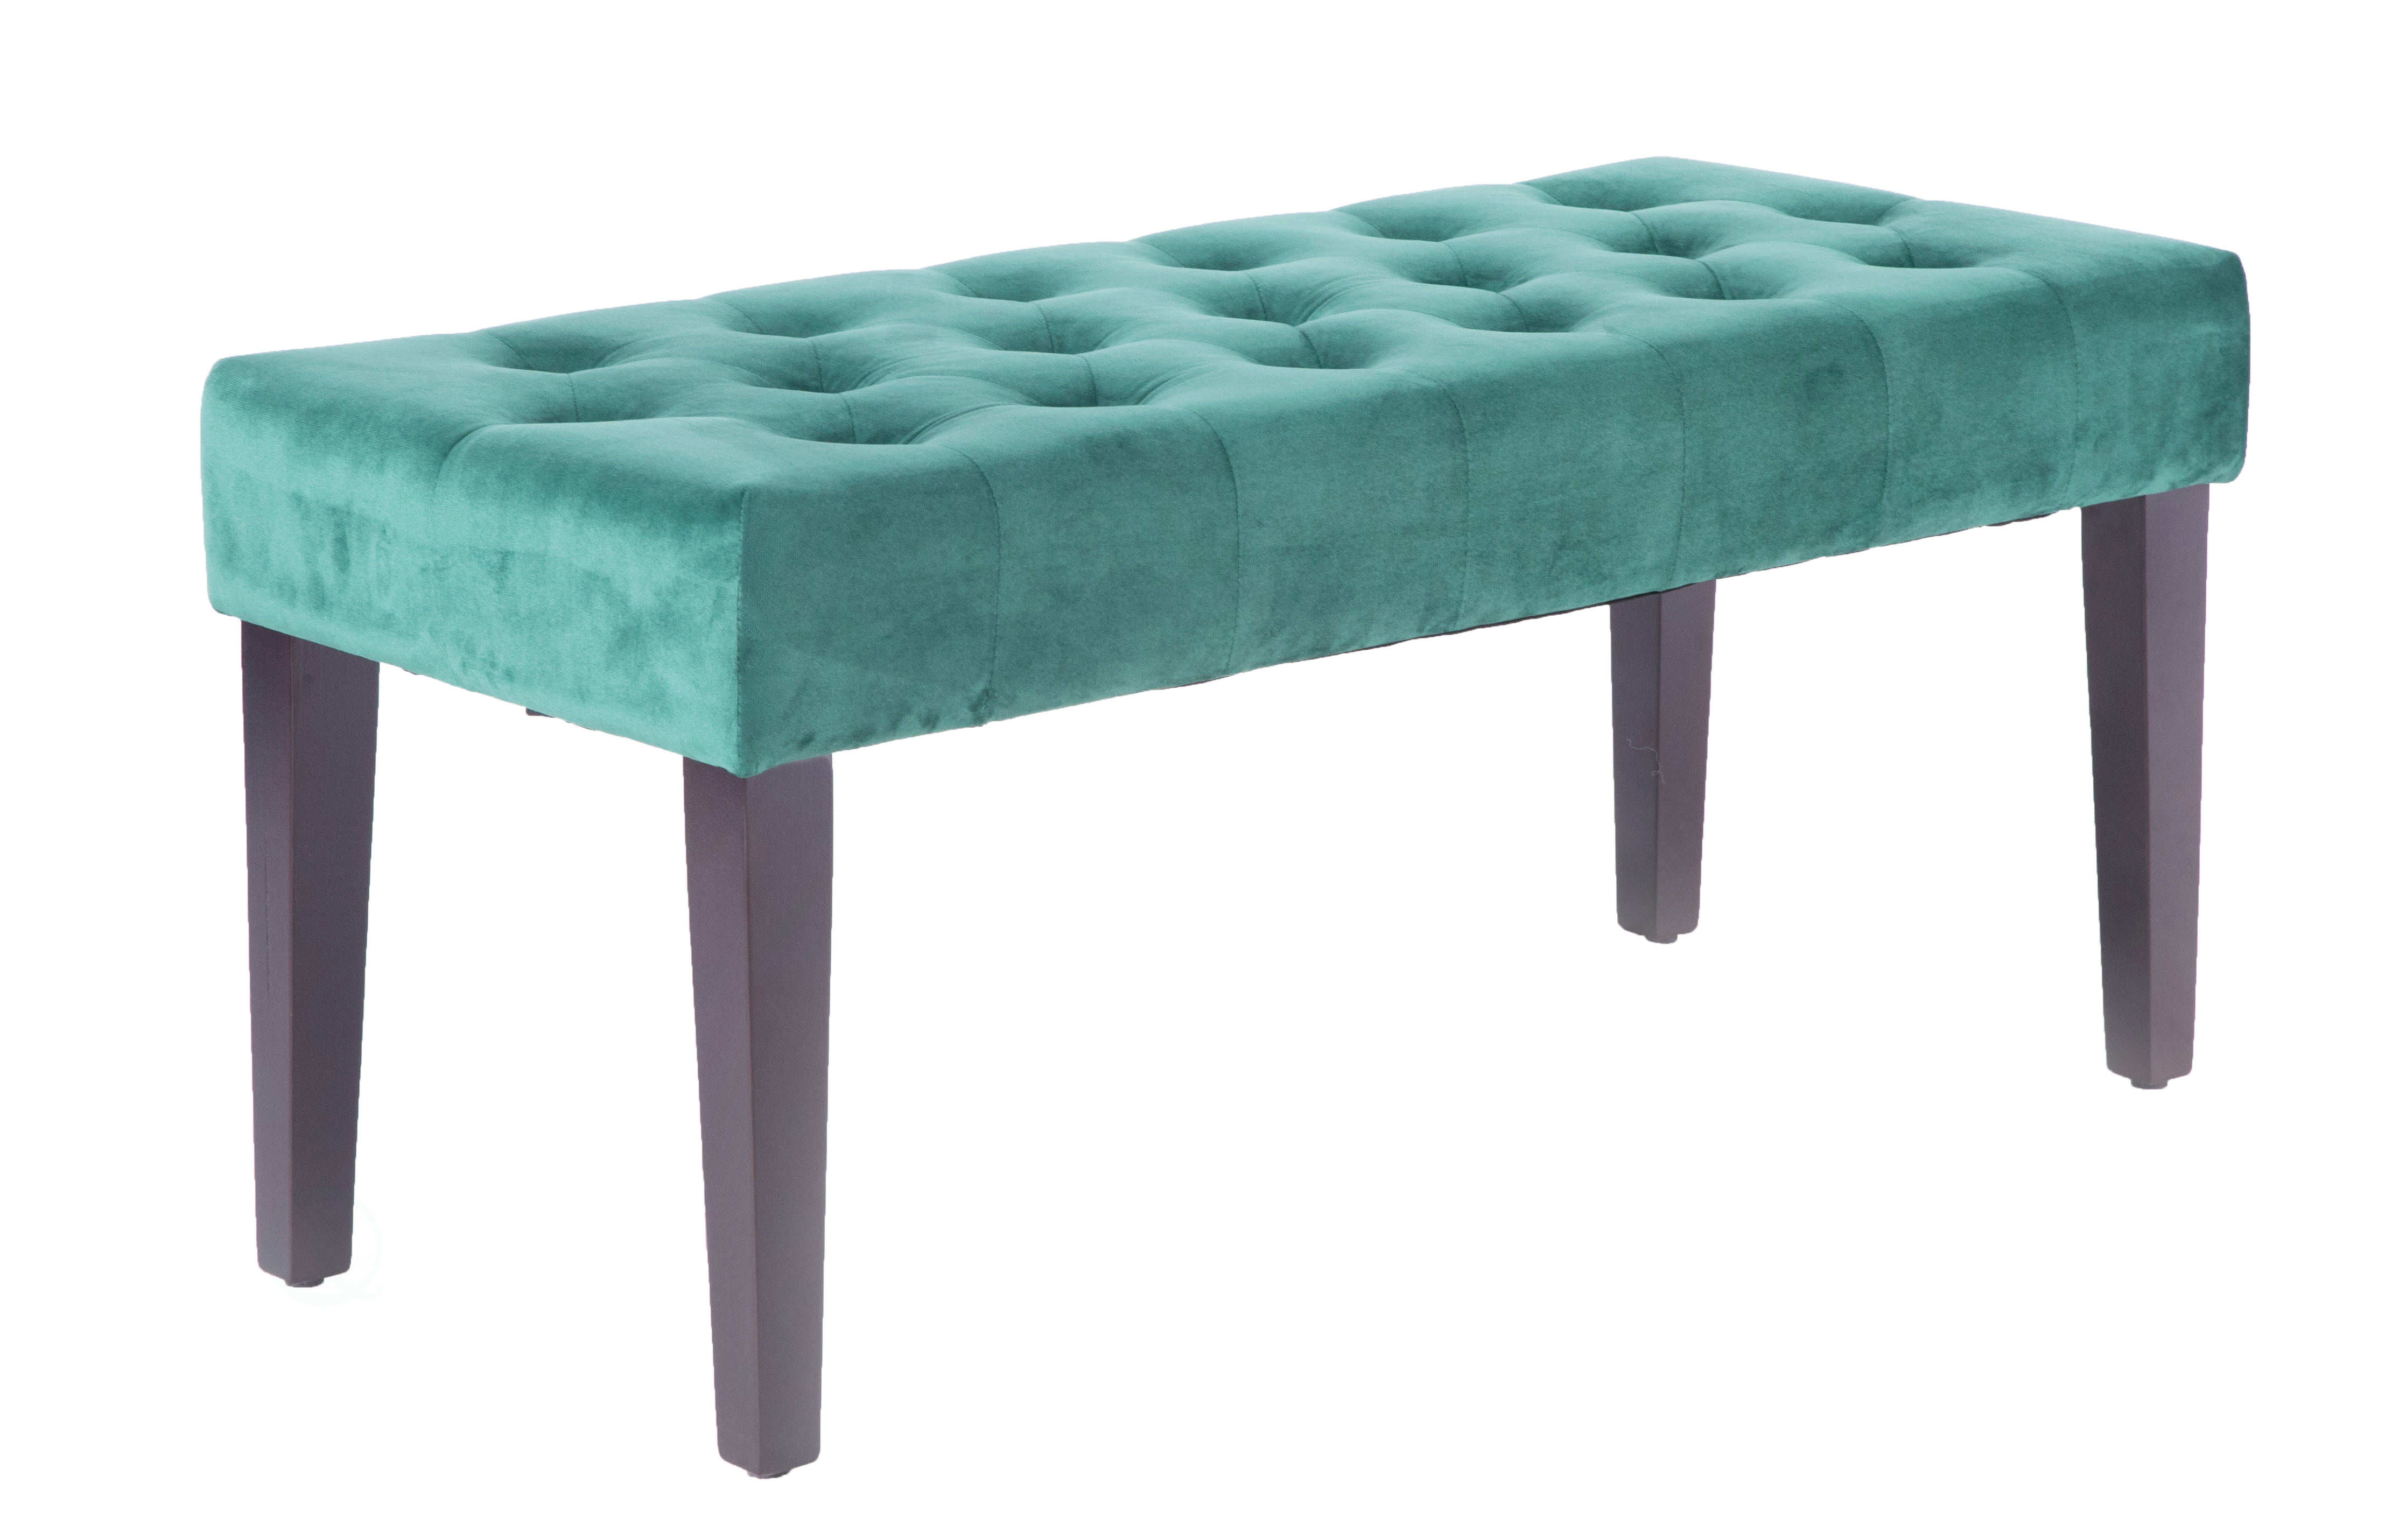 Details About New Bold Tones Velvet Tufted Modern Ottoman Coffee Table  Bench, Green